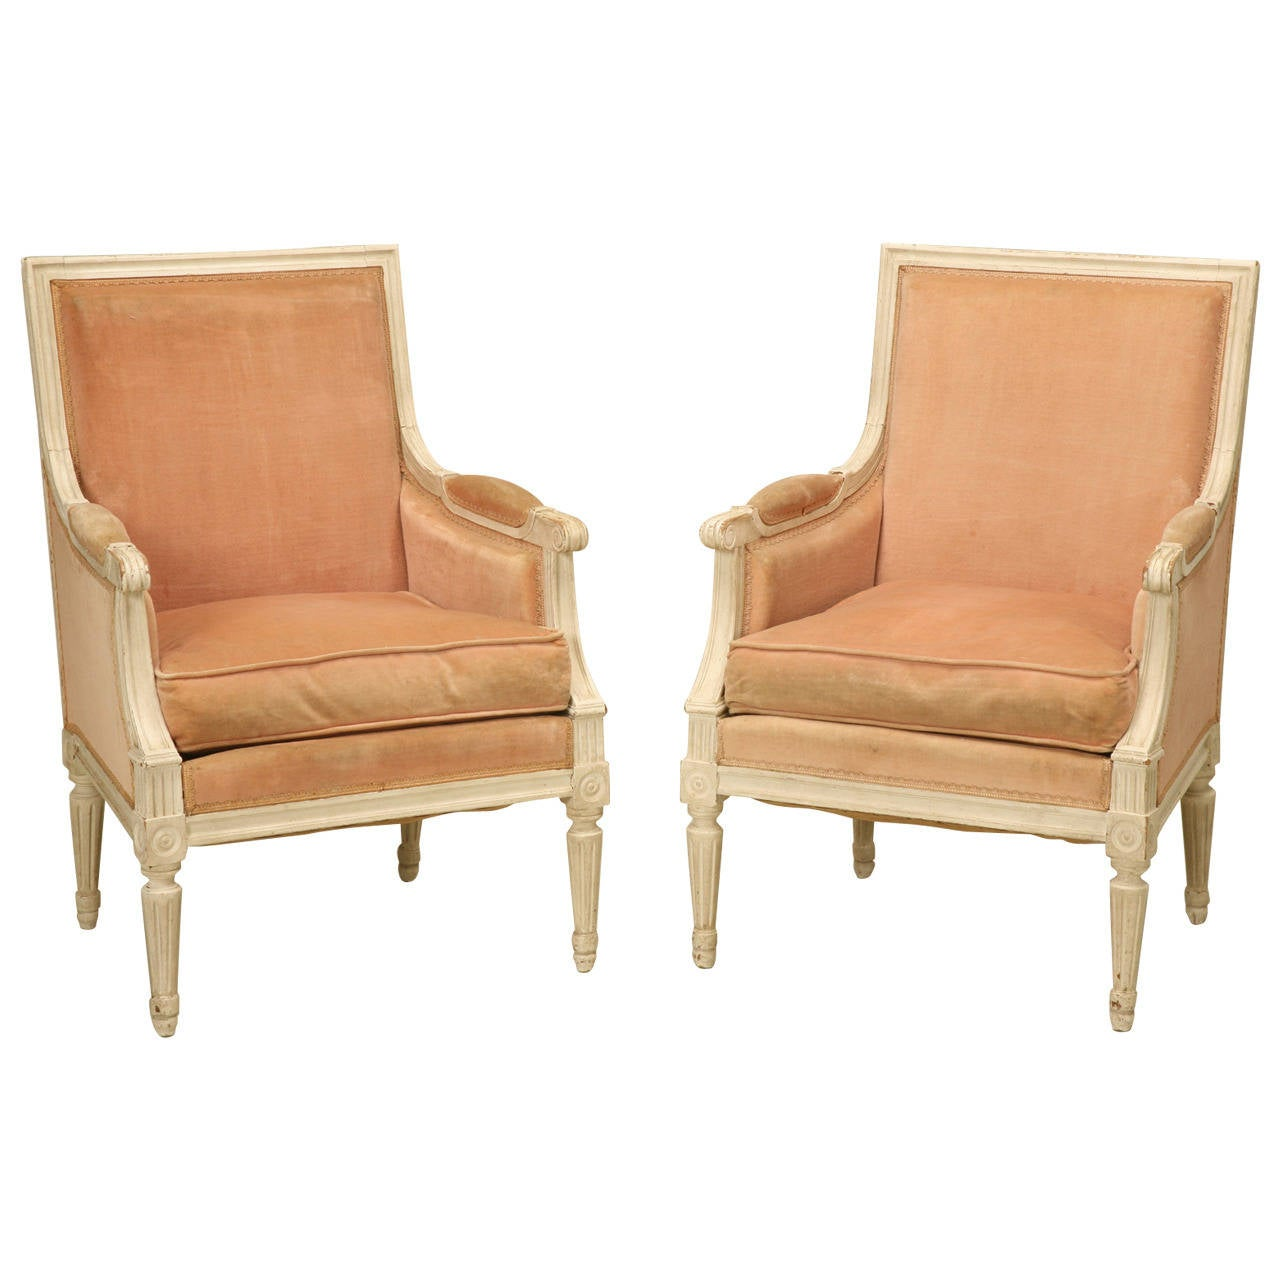 Bergere chair and ottoman - French Louis Xvi Style Bergere Chairs In Original Paint 1